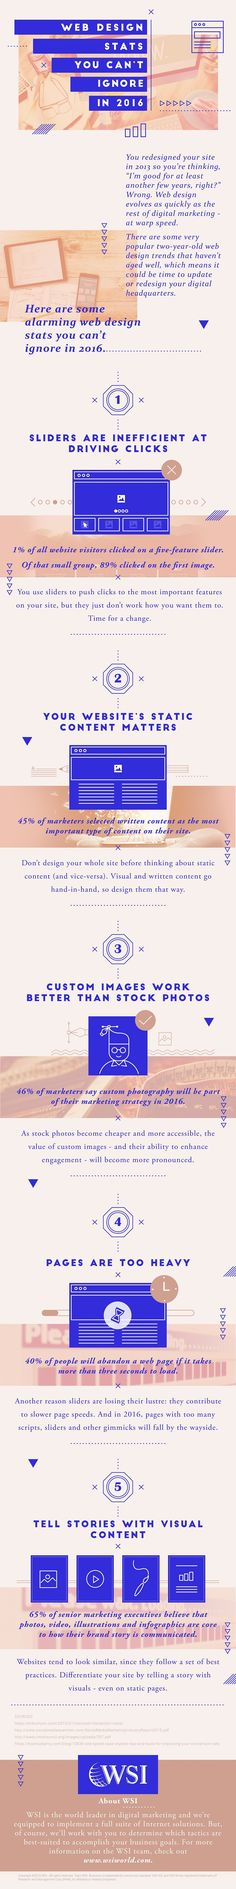 Web Design Trends You Can't Ignore in 2016 [Infographic] | Social Media Today